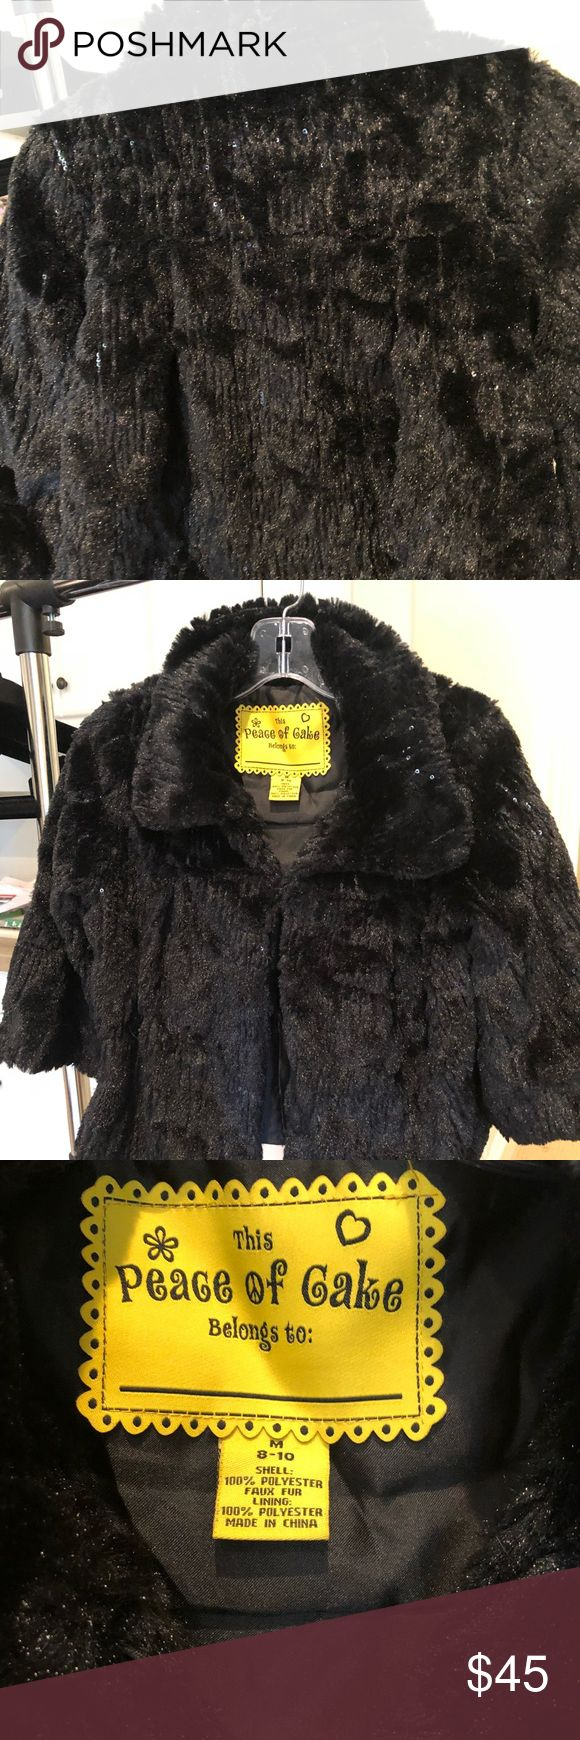 Peace of Cake girls faux fur jacket Fabulous girls coat. Closes at top with a hook Shirts & Tops Sweaters